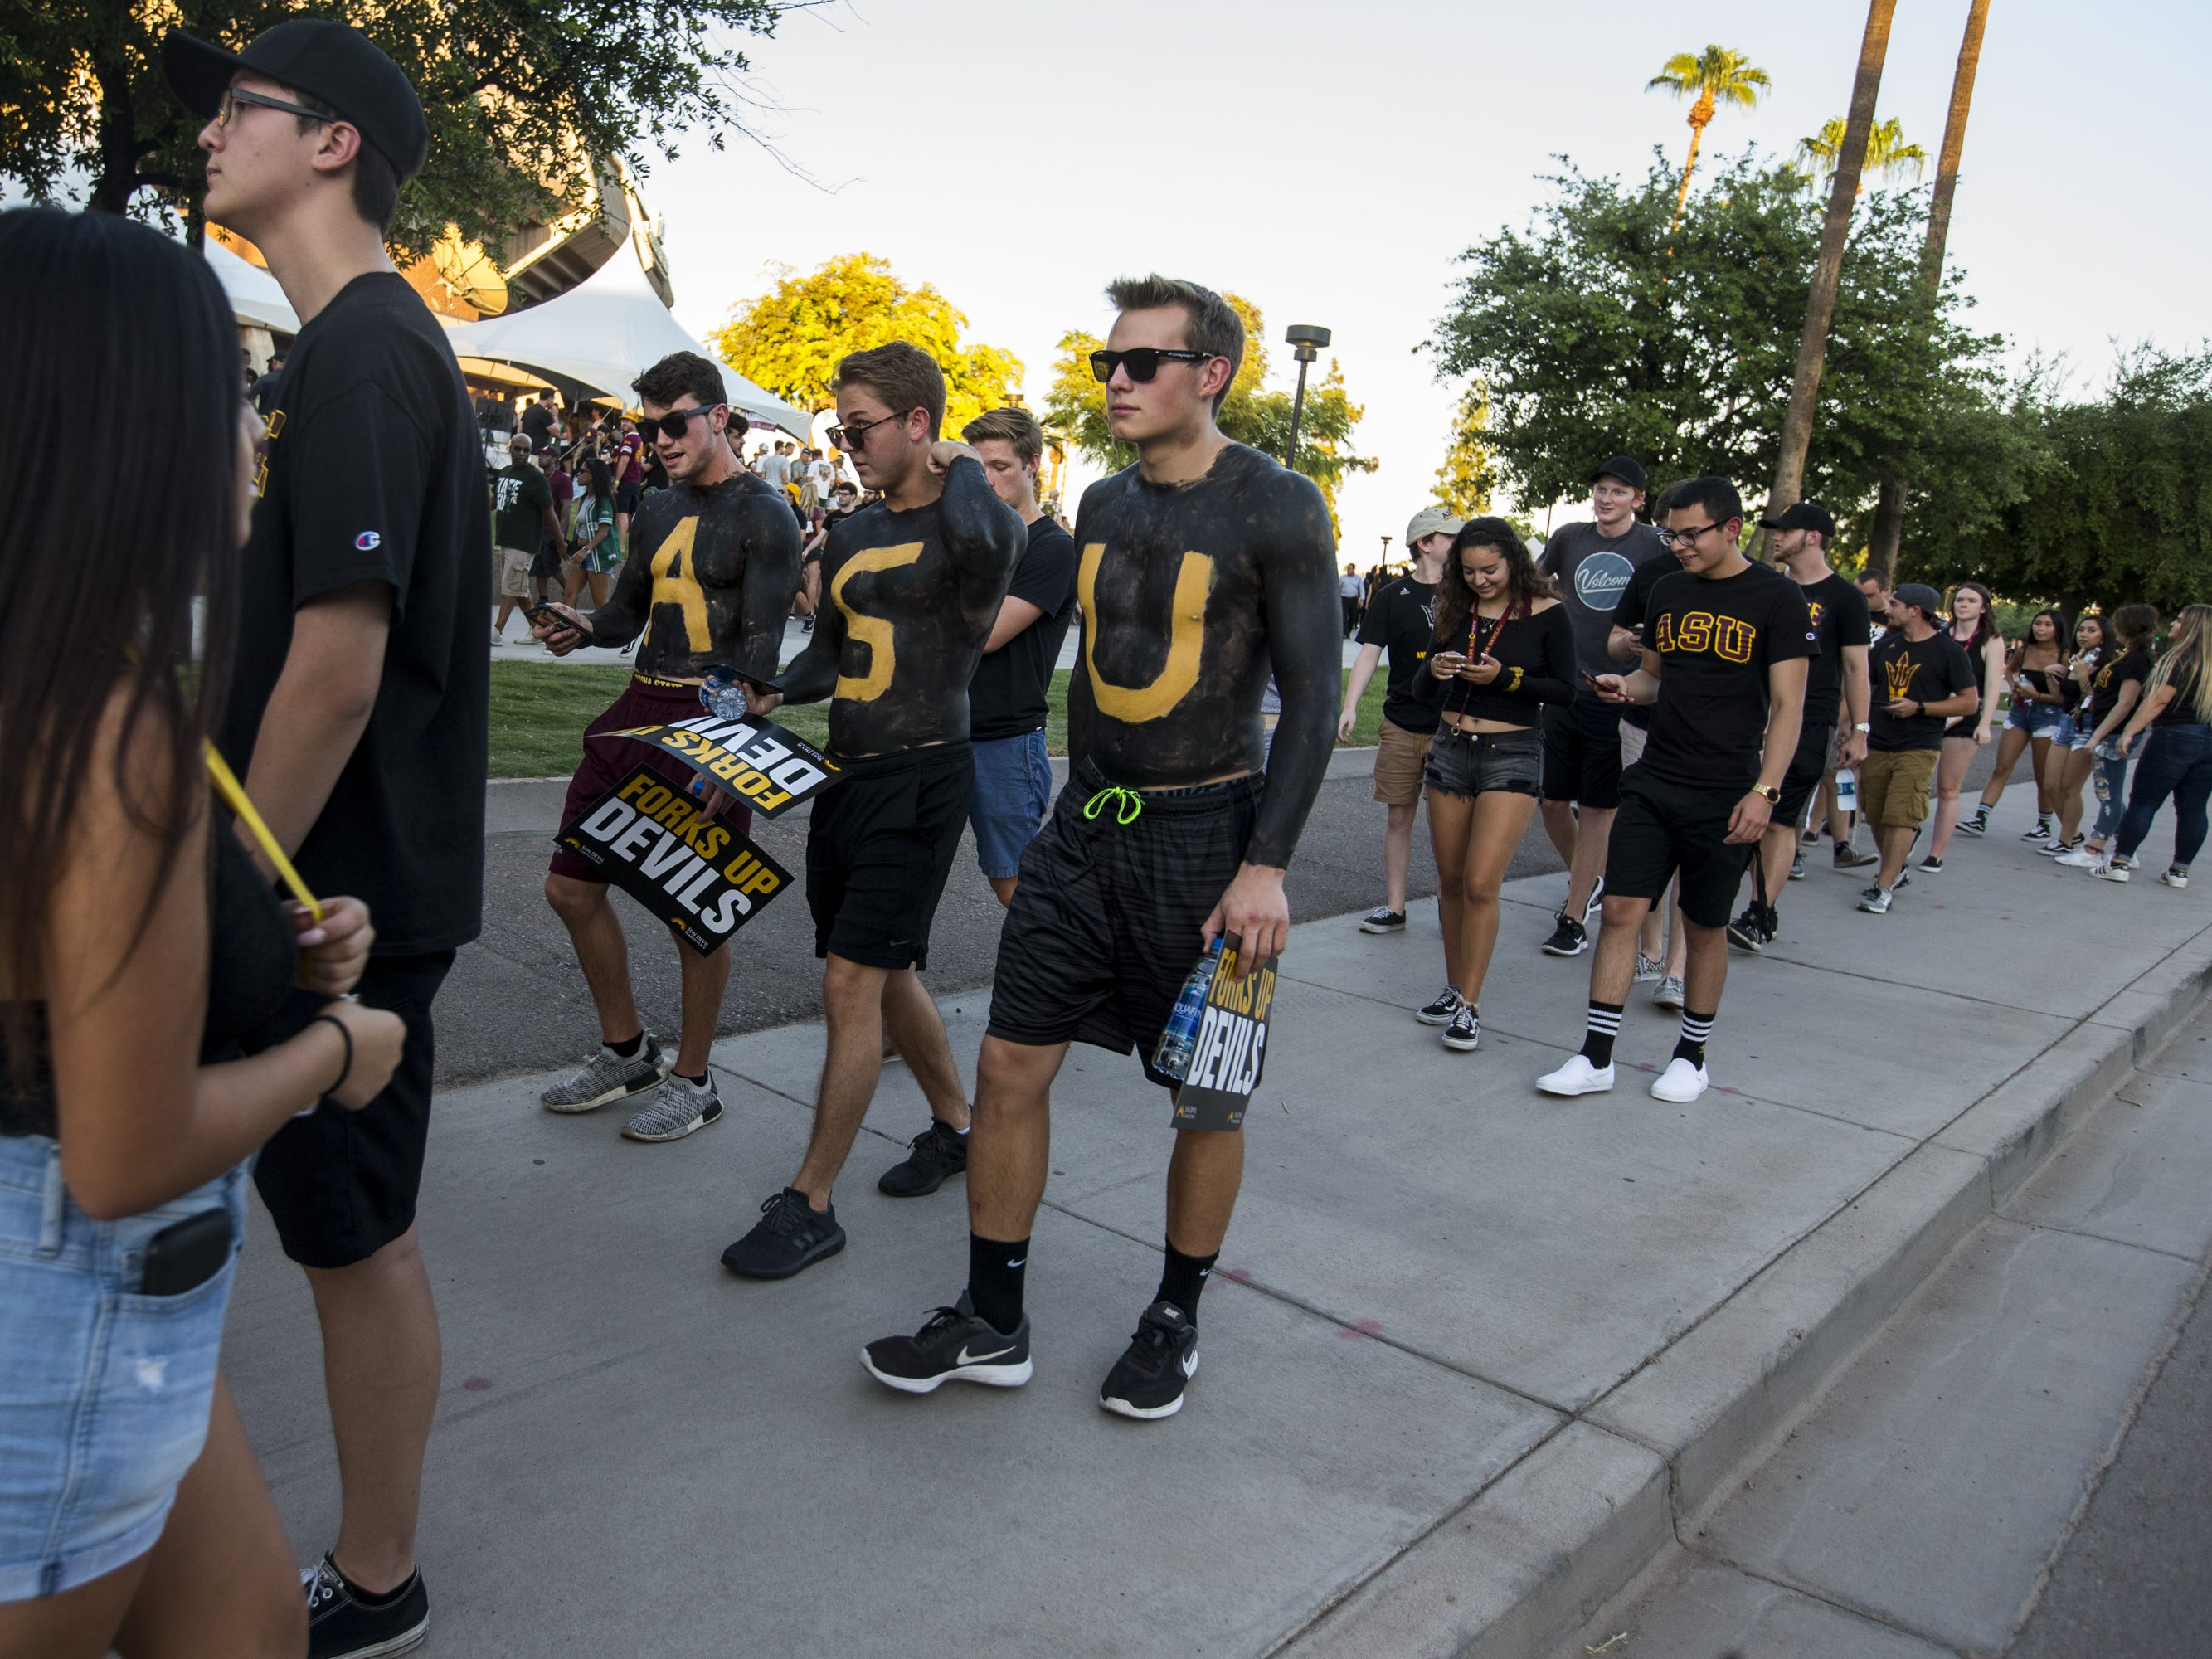 Fans wait in line before the game against Michigan State on Saturday, Sept. 8, 2018, at Sun Devil Stadium in Tempe, Ariz.